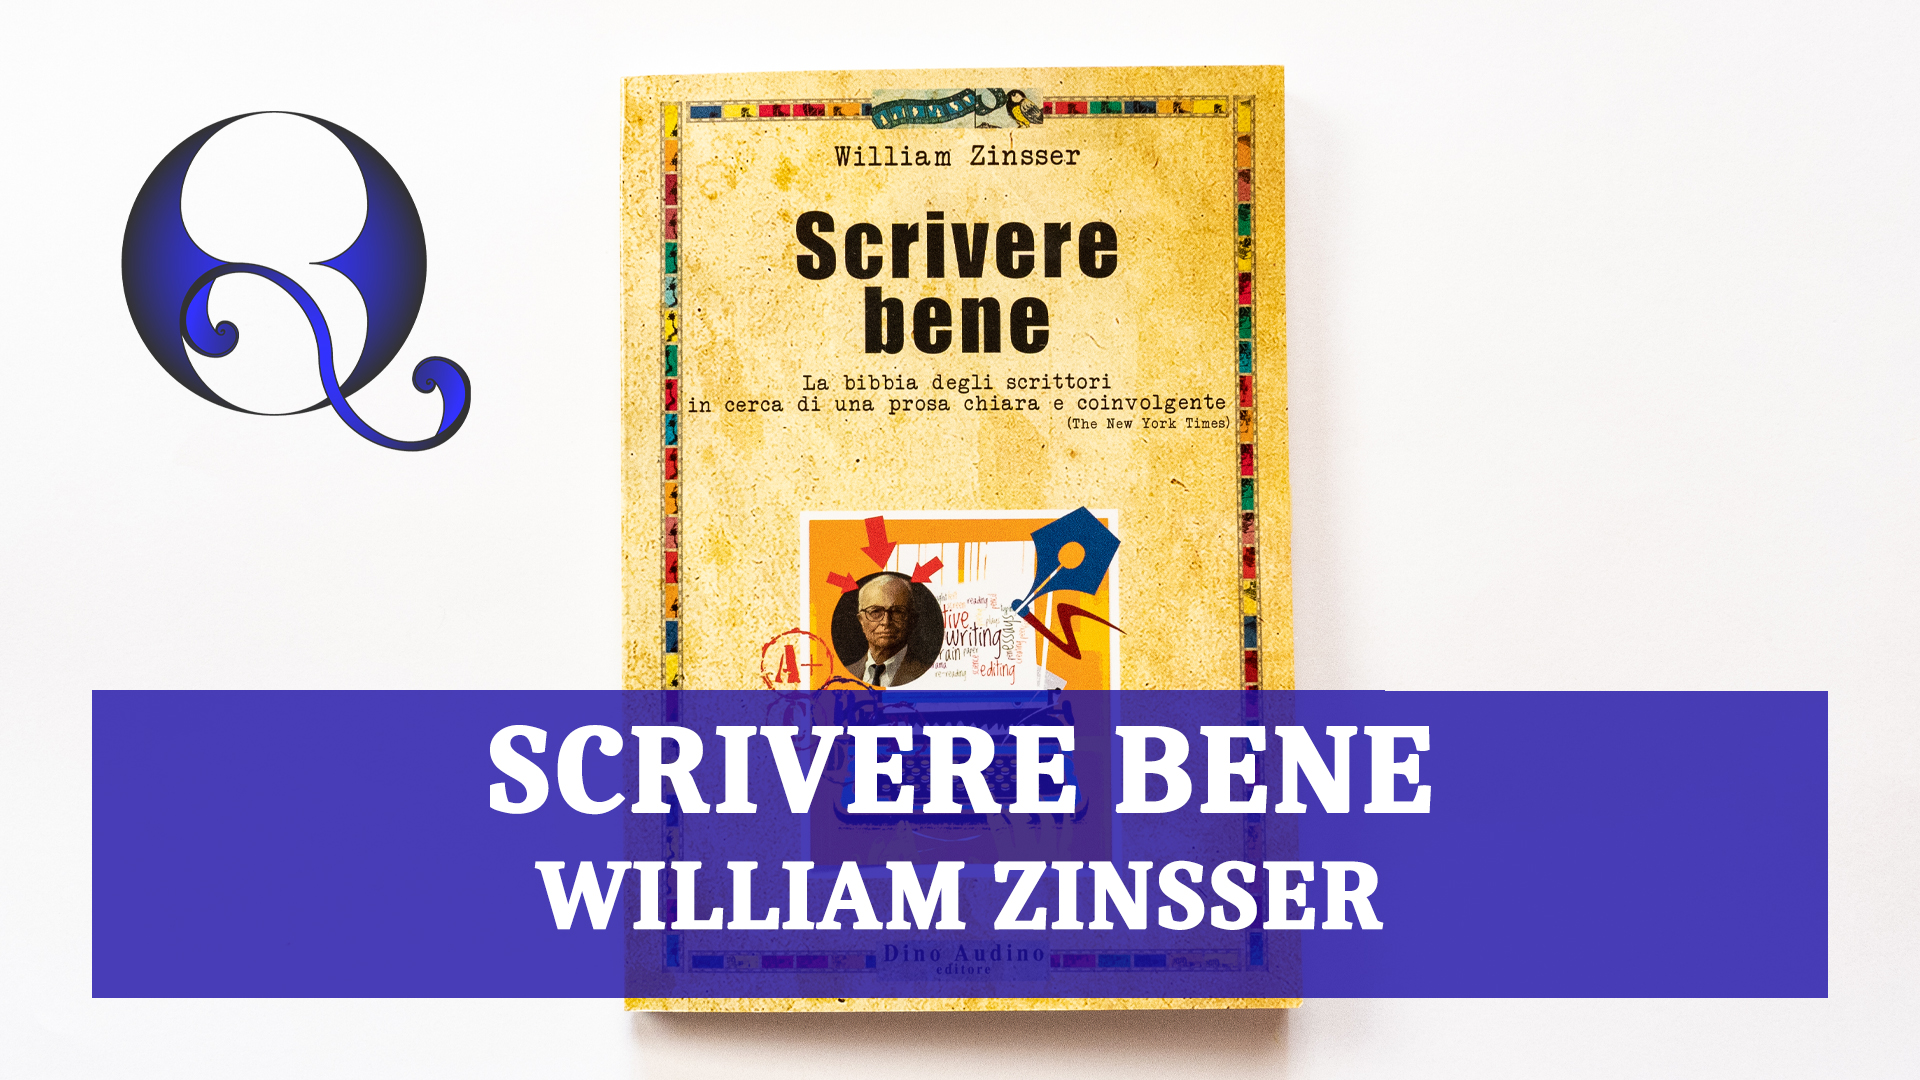 SCRIVERE BENE di WILLIAM ZINSSER: riassunto libro